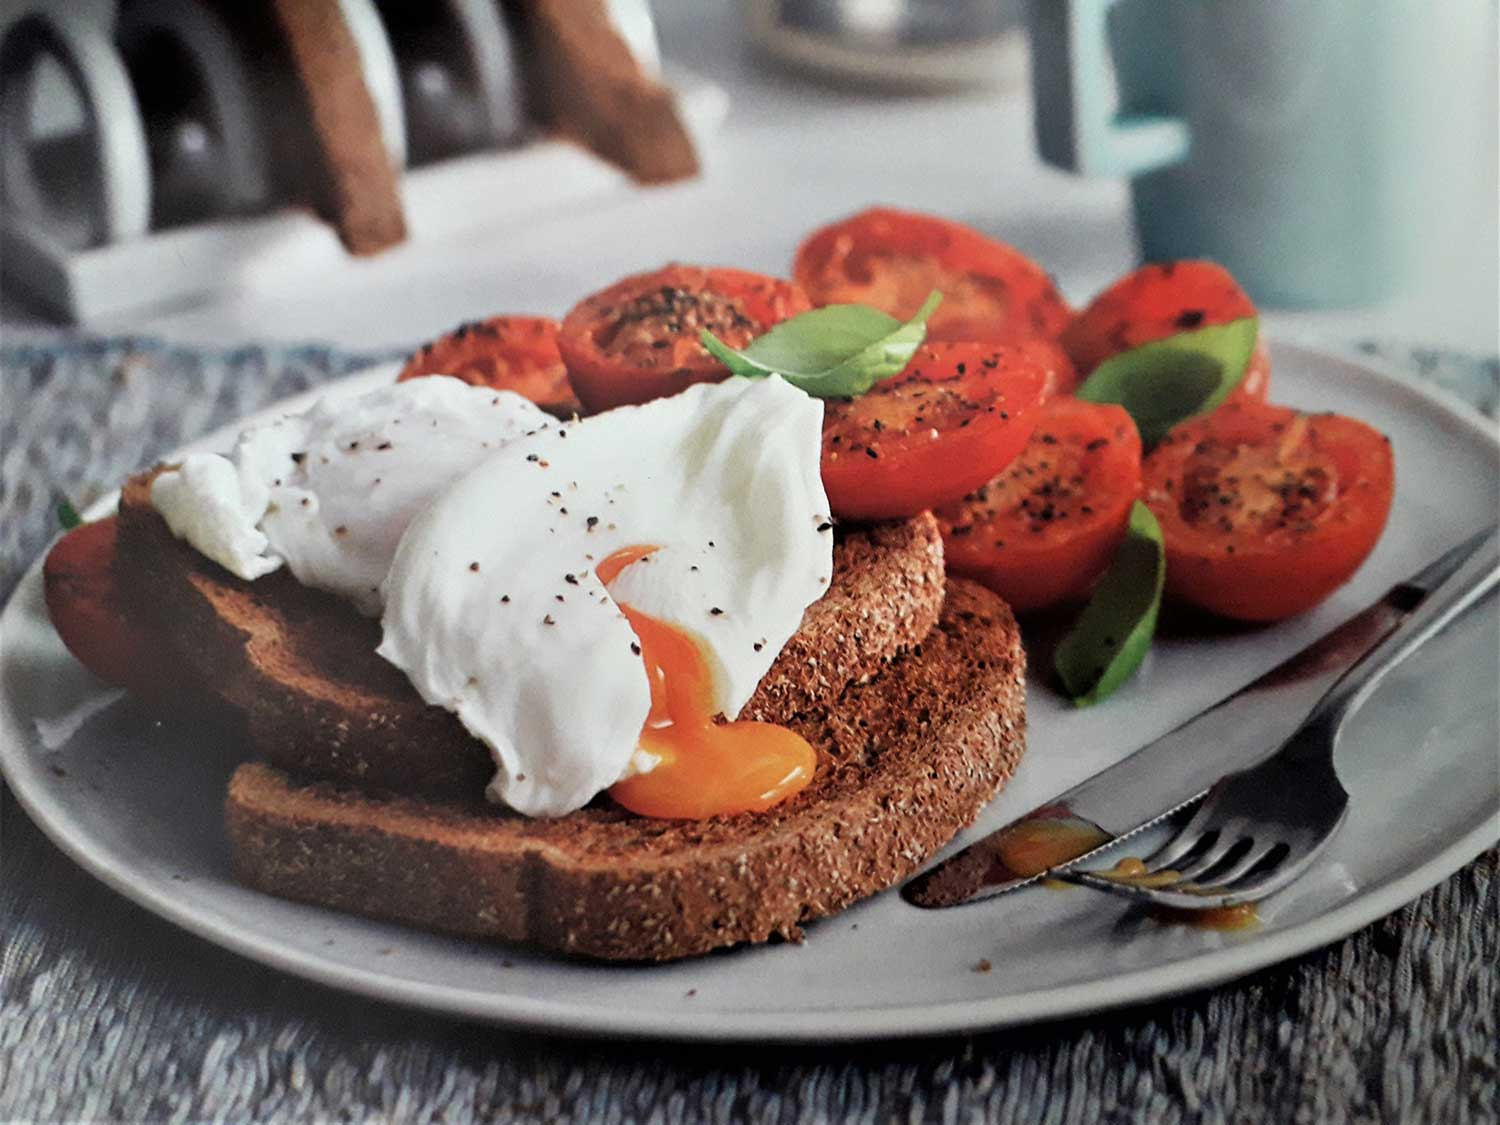 Poached egg on toast.